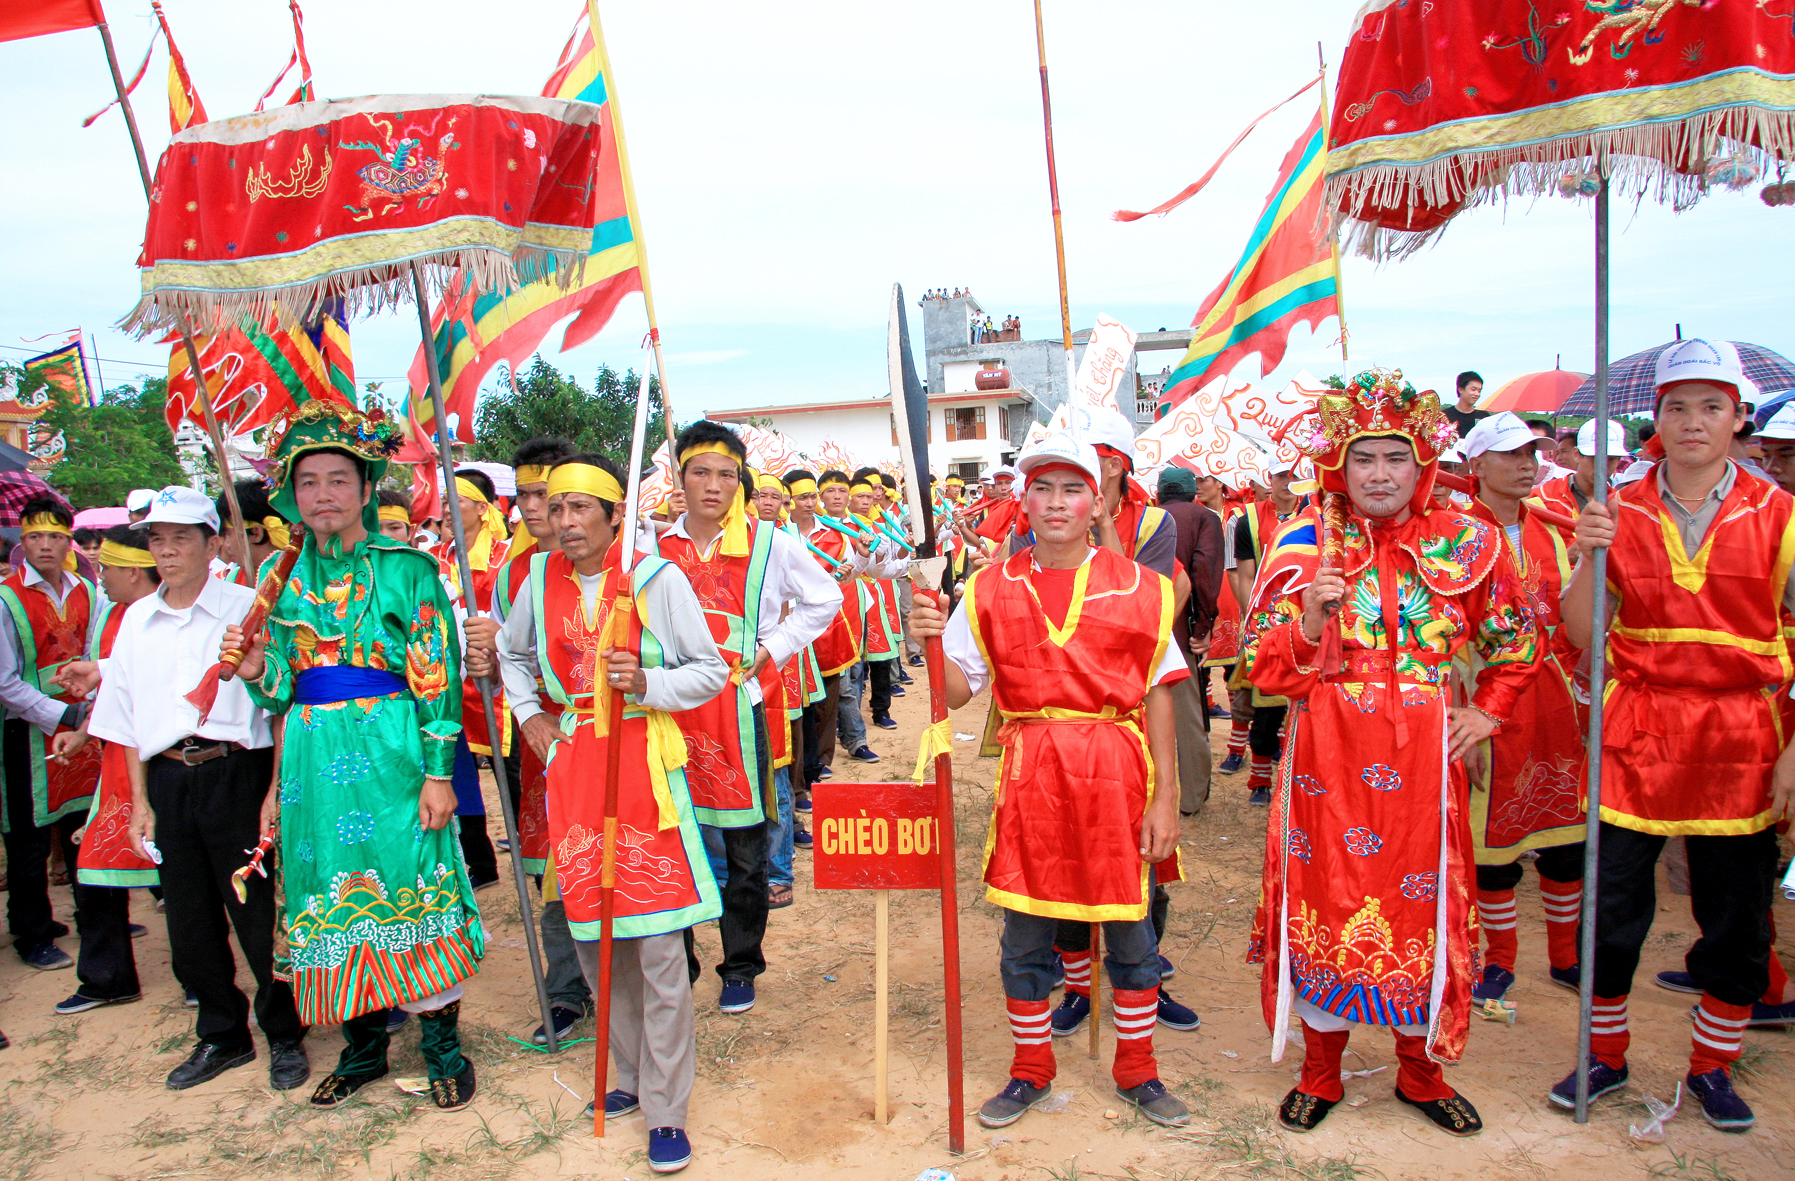 Historical Festival in Quan Lan Village